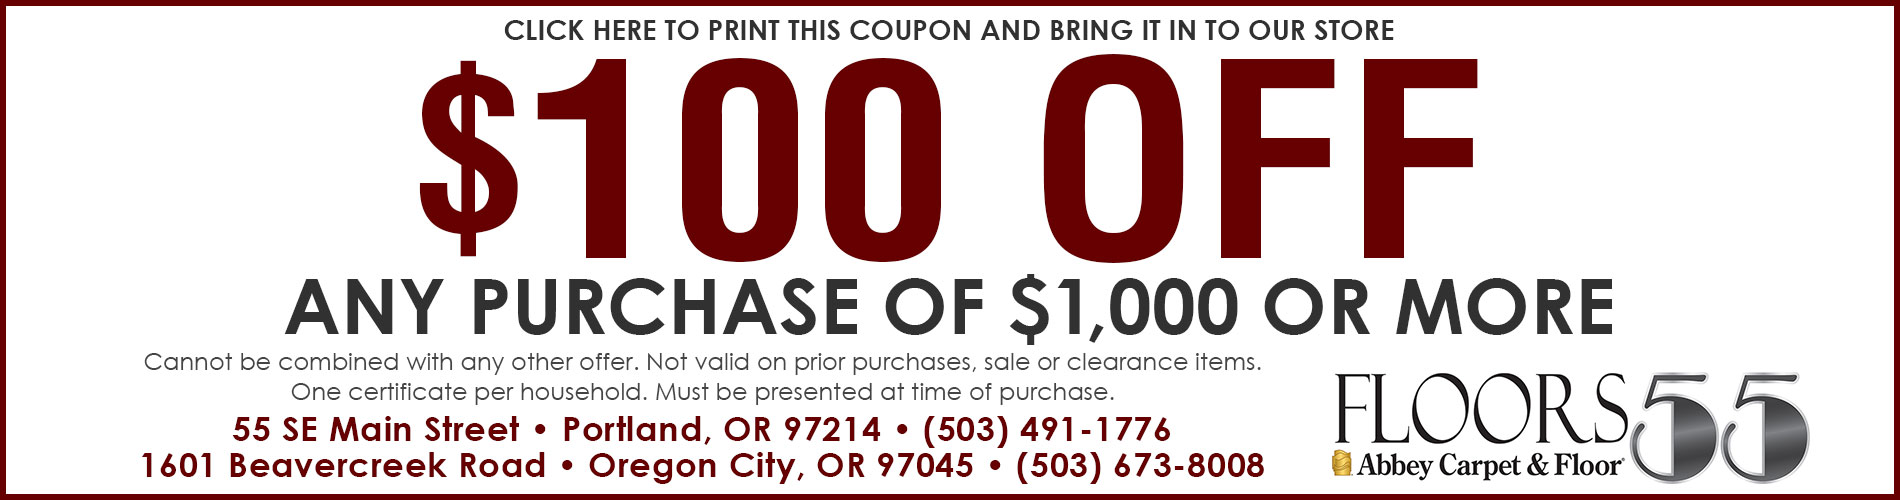 Click here to print this coupon and bring it into our store for $100 off any purchase of $1,000 or more!